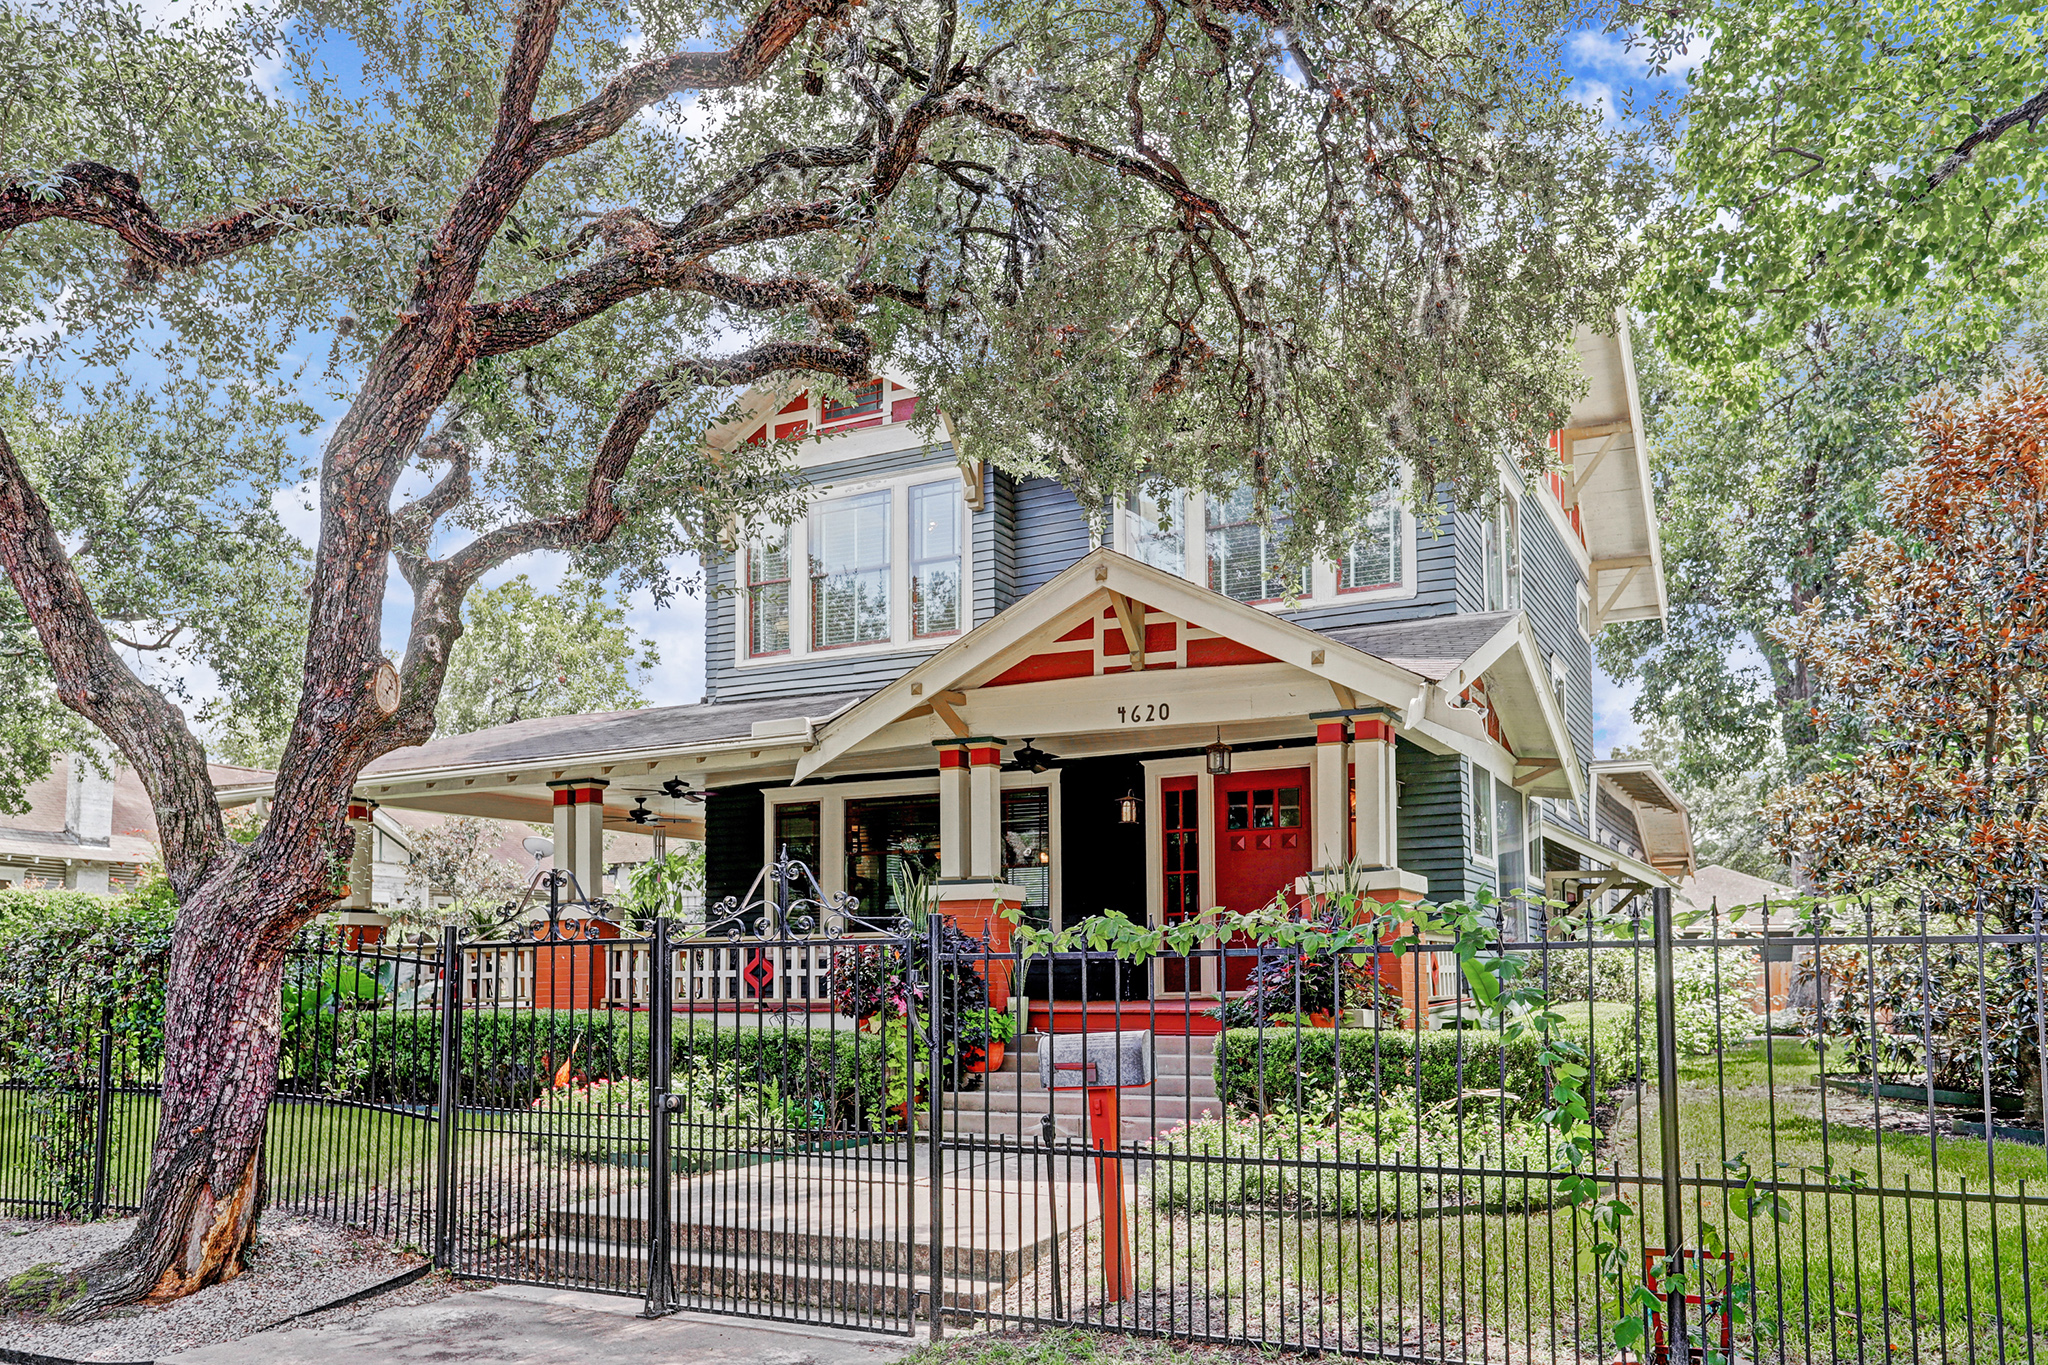 Some Houston deed restrictions' language still restrict certain races